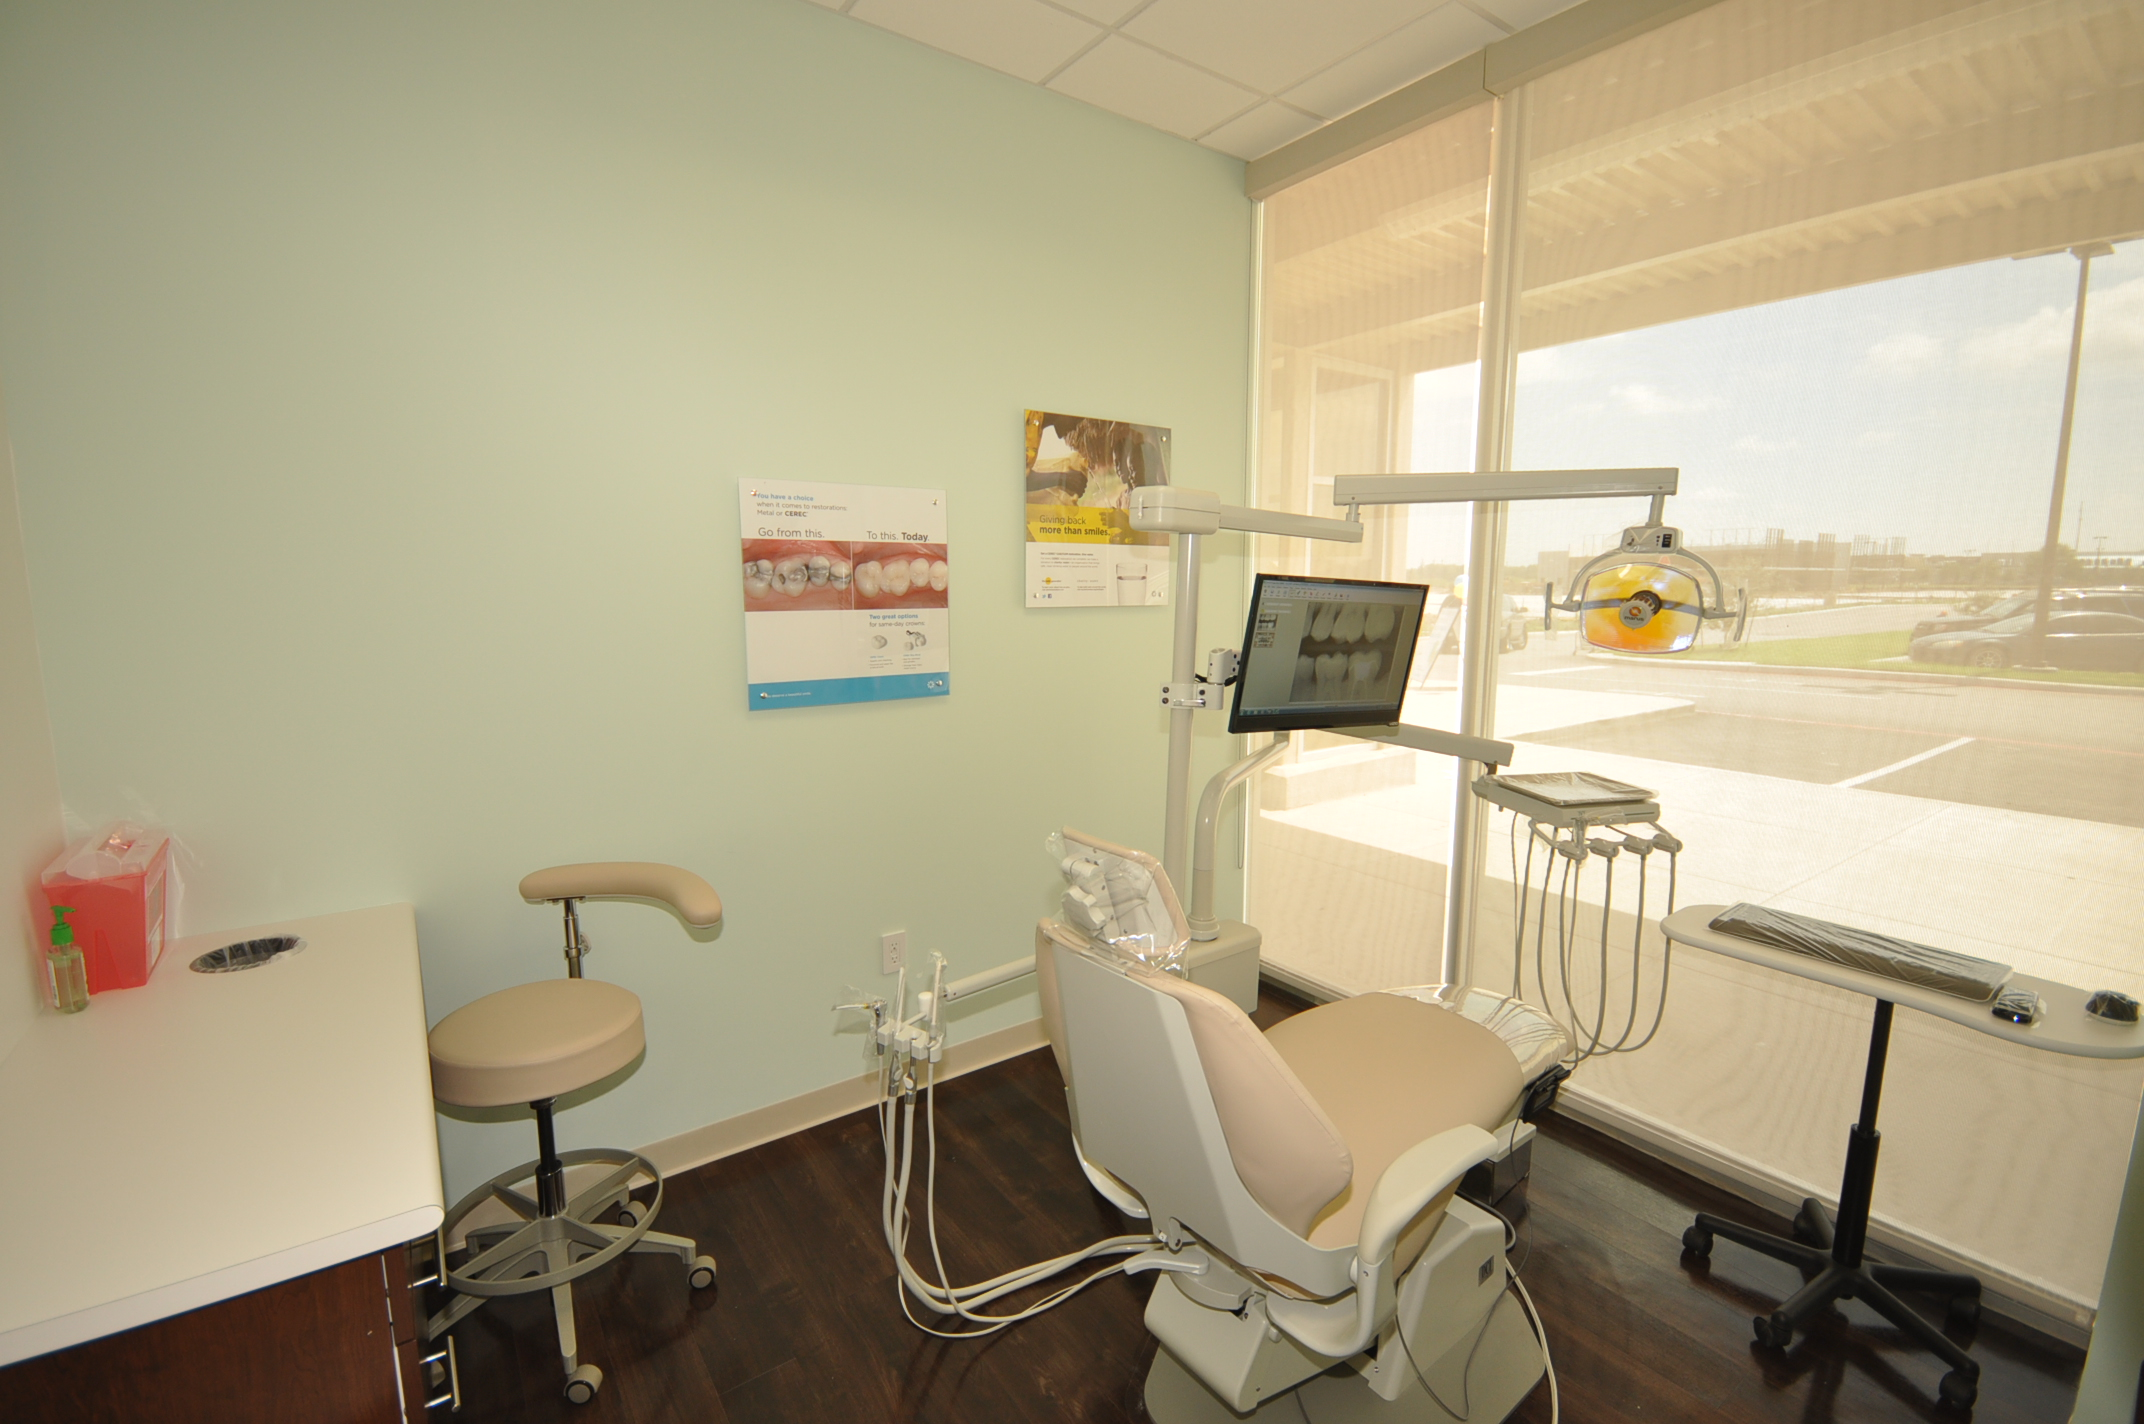 Pearland Dentists image 7